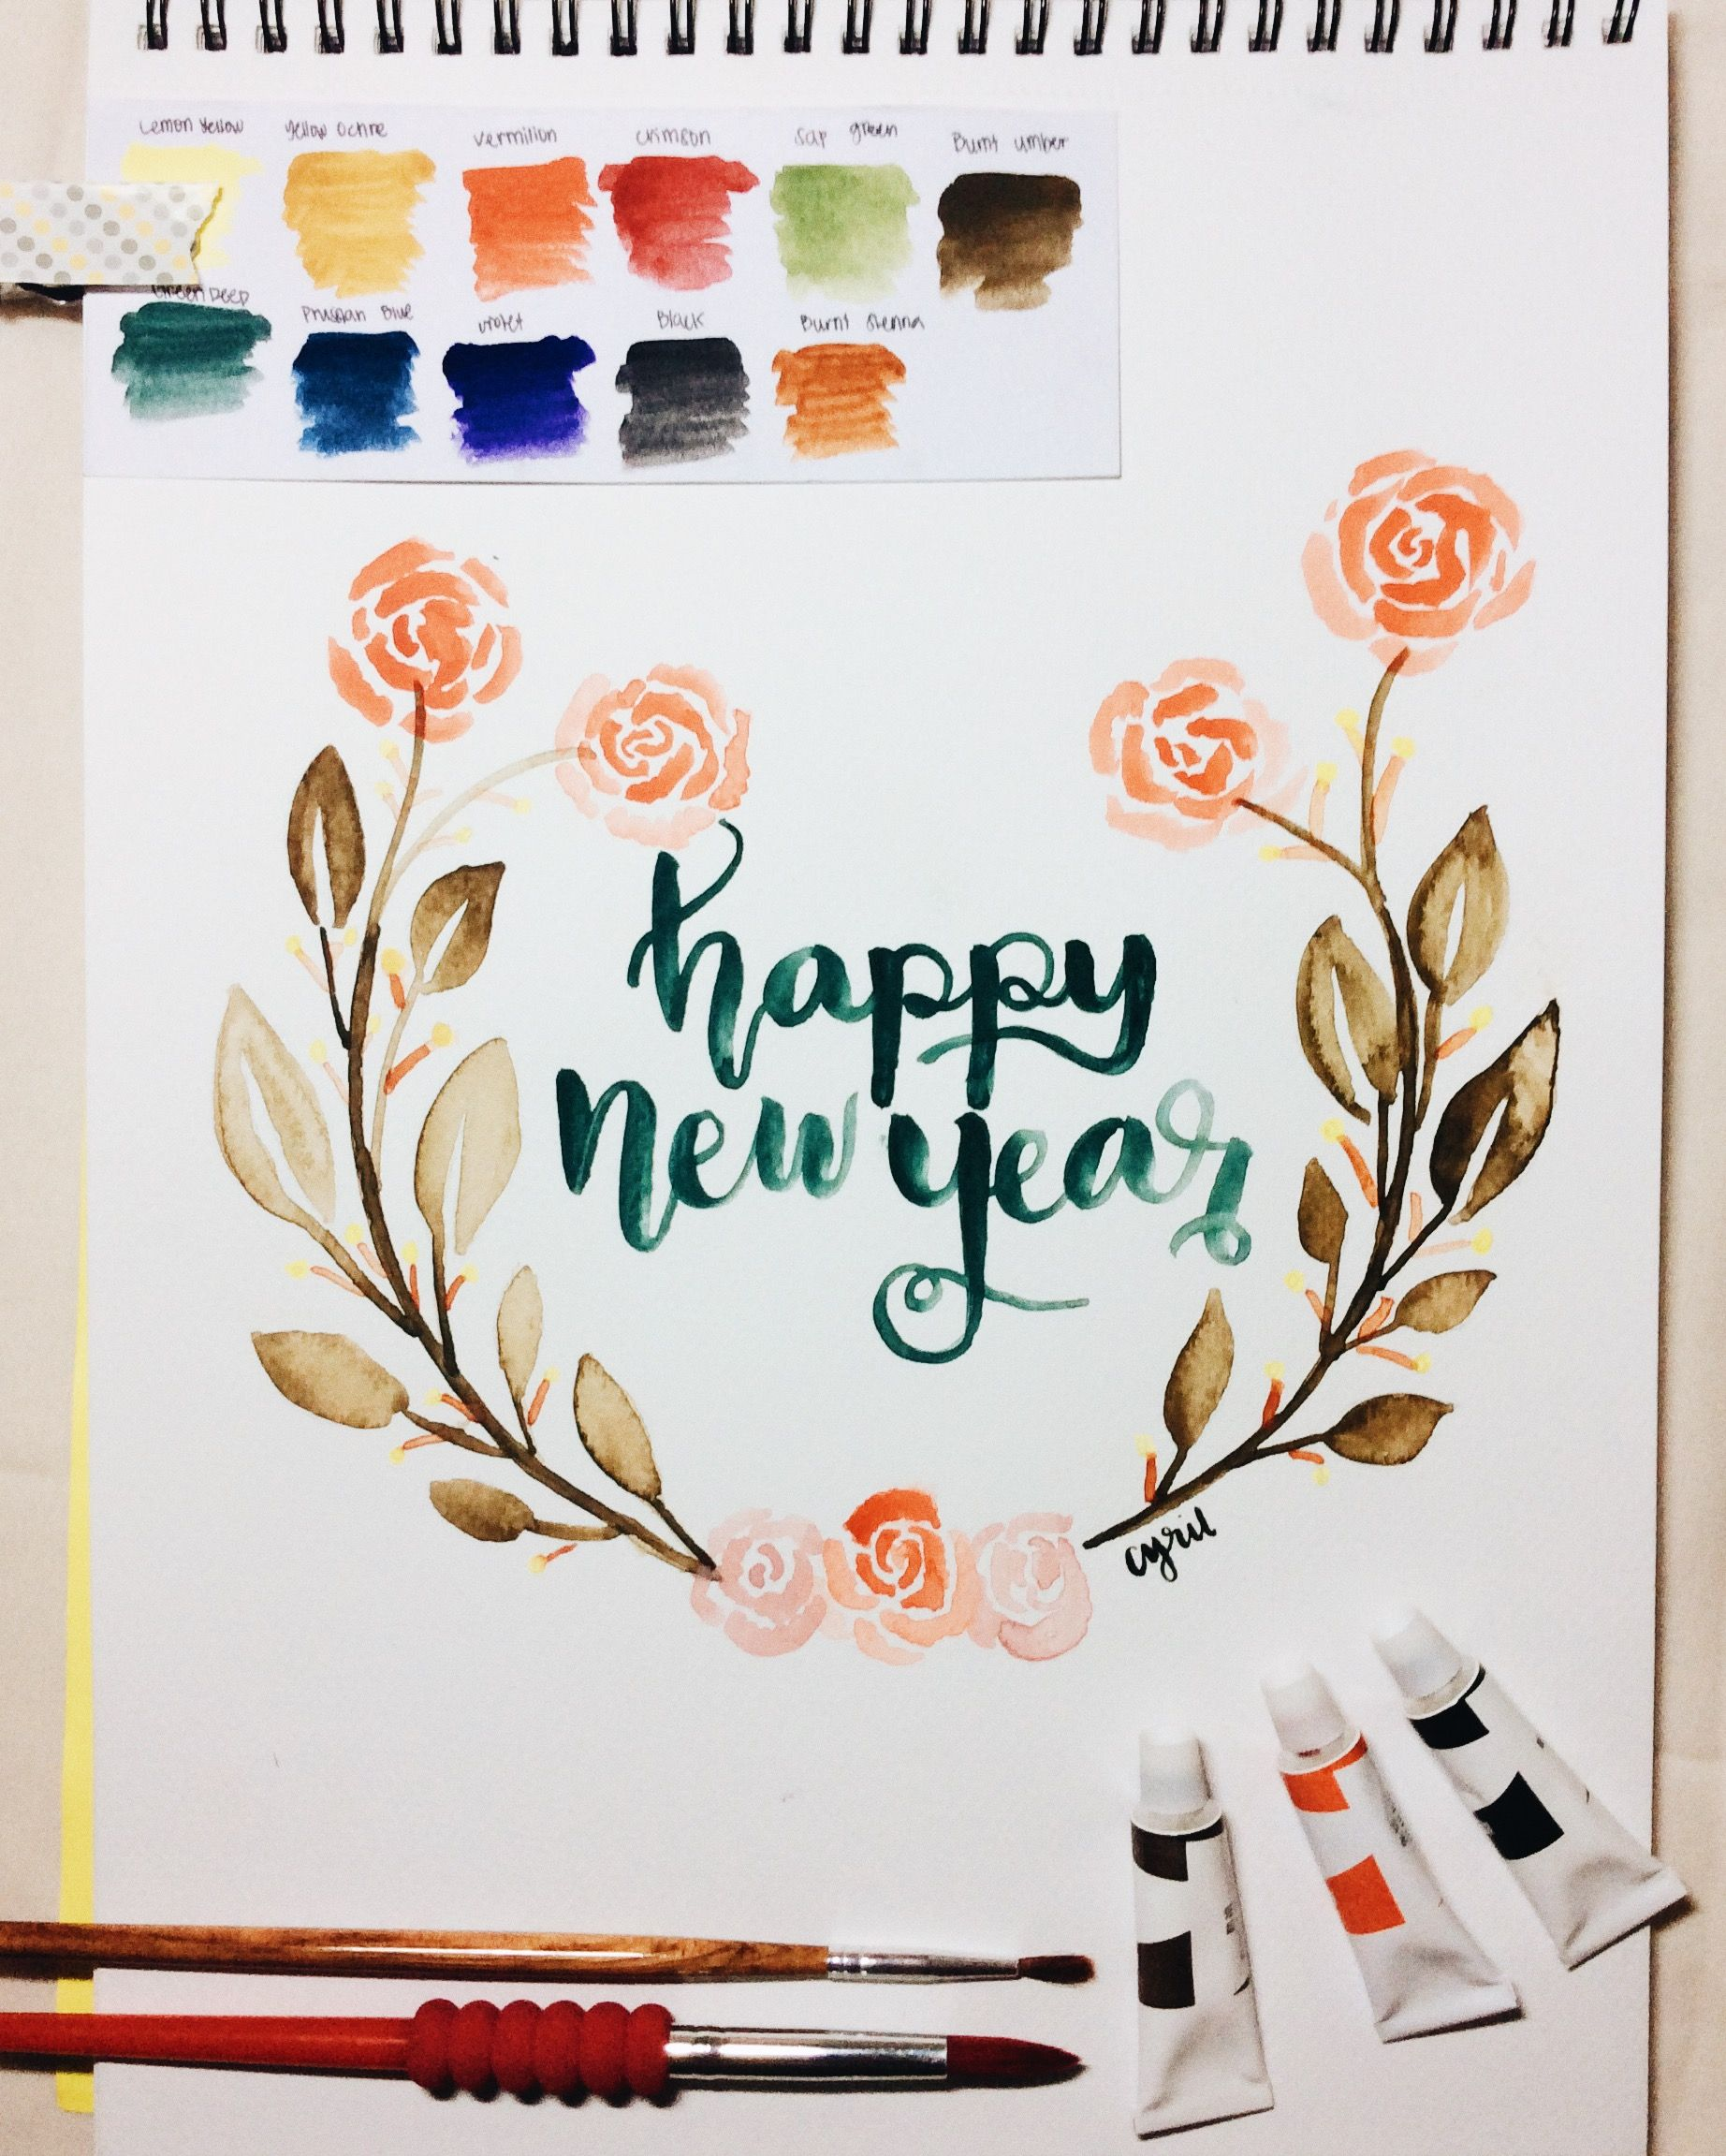 NEW YEAR GREETING CARD WREATH WATERCOLOR HAPPY NEW YEAR